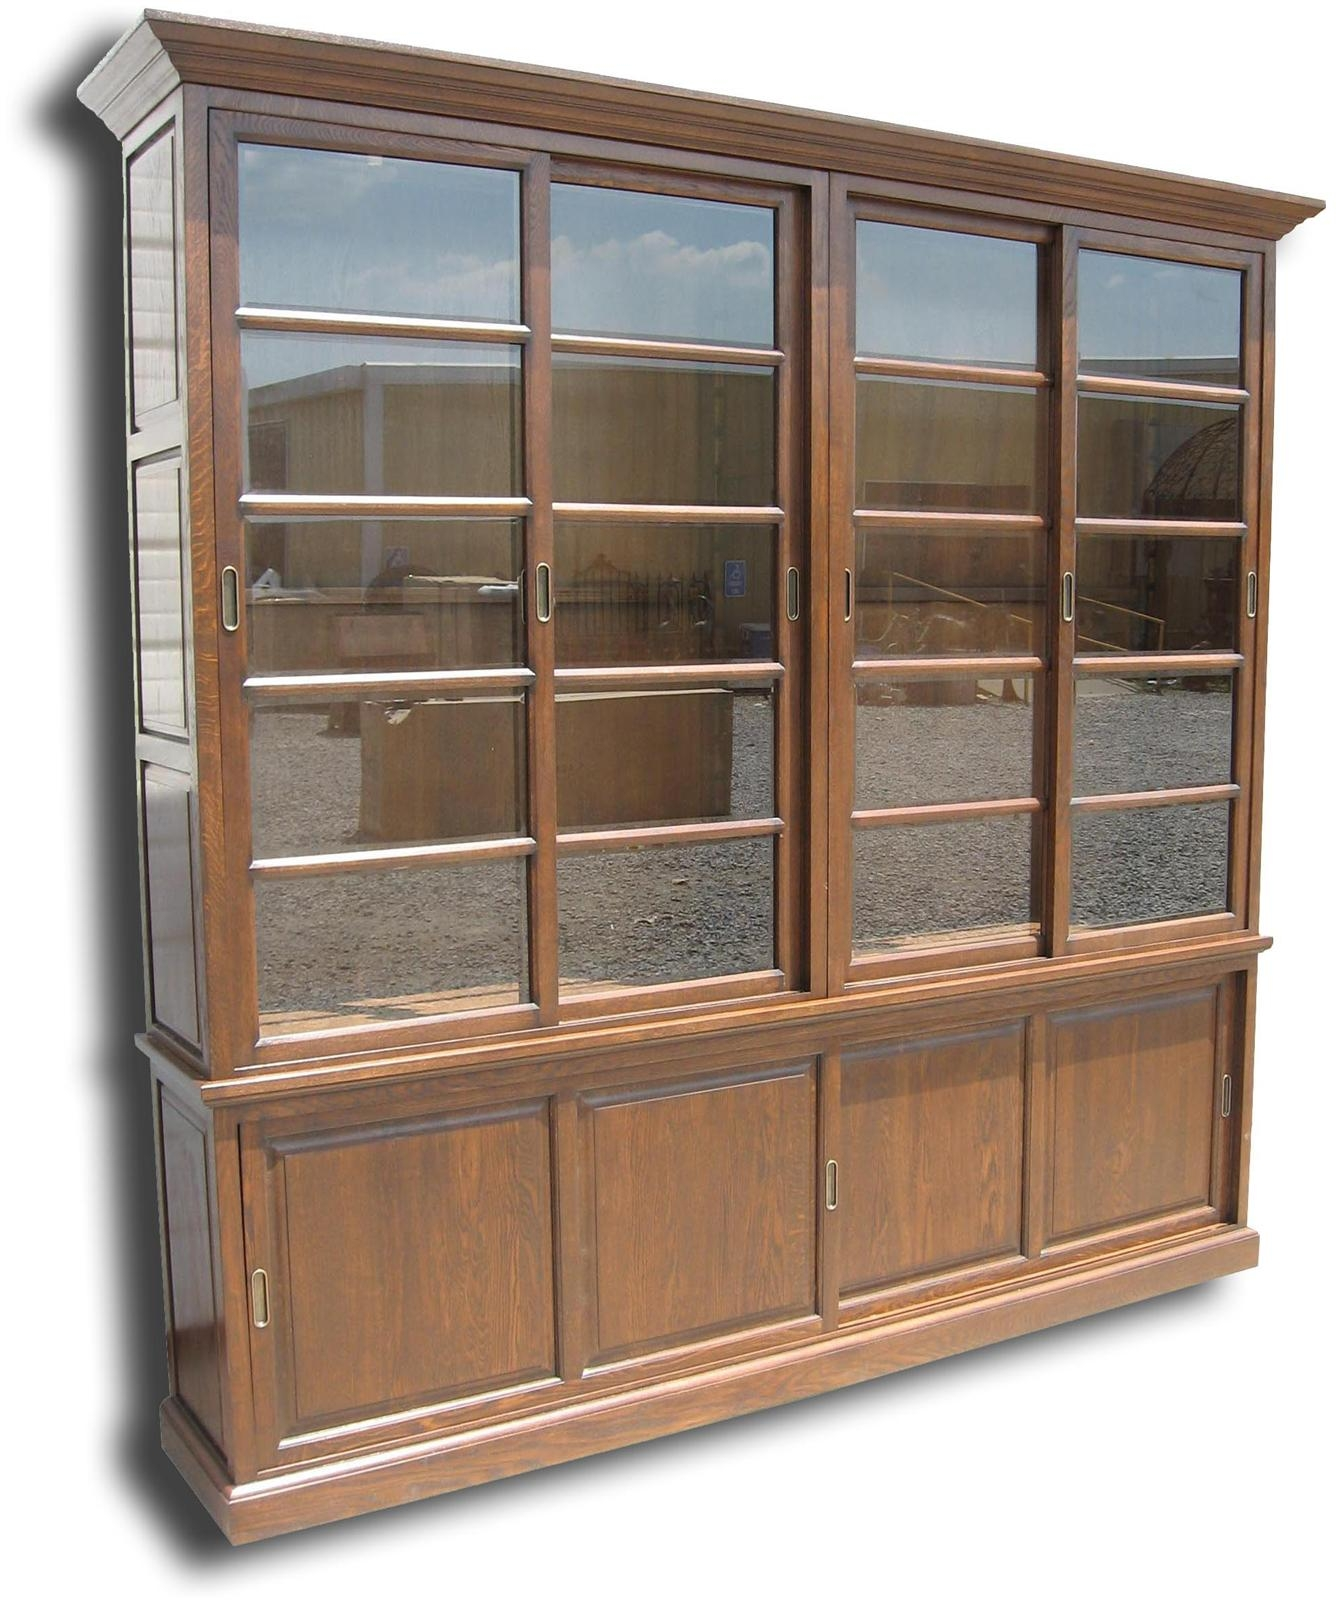 New Bookcase Solid Oak Wood Antique Finish Sliding Doors